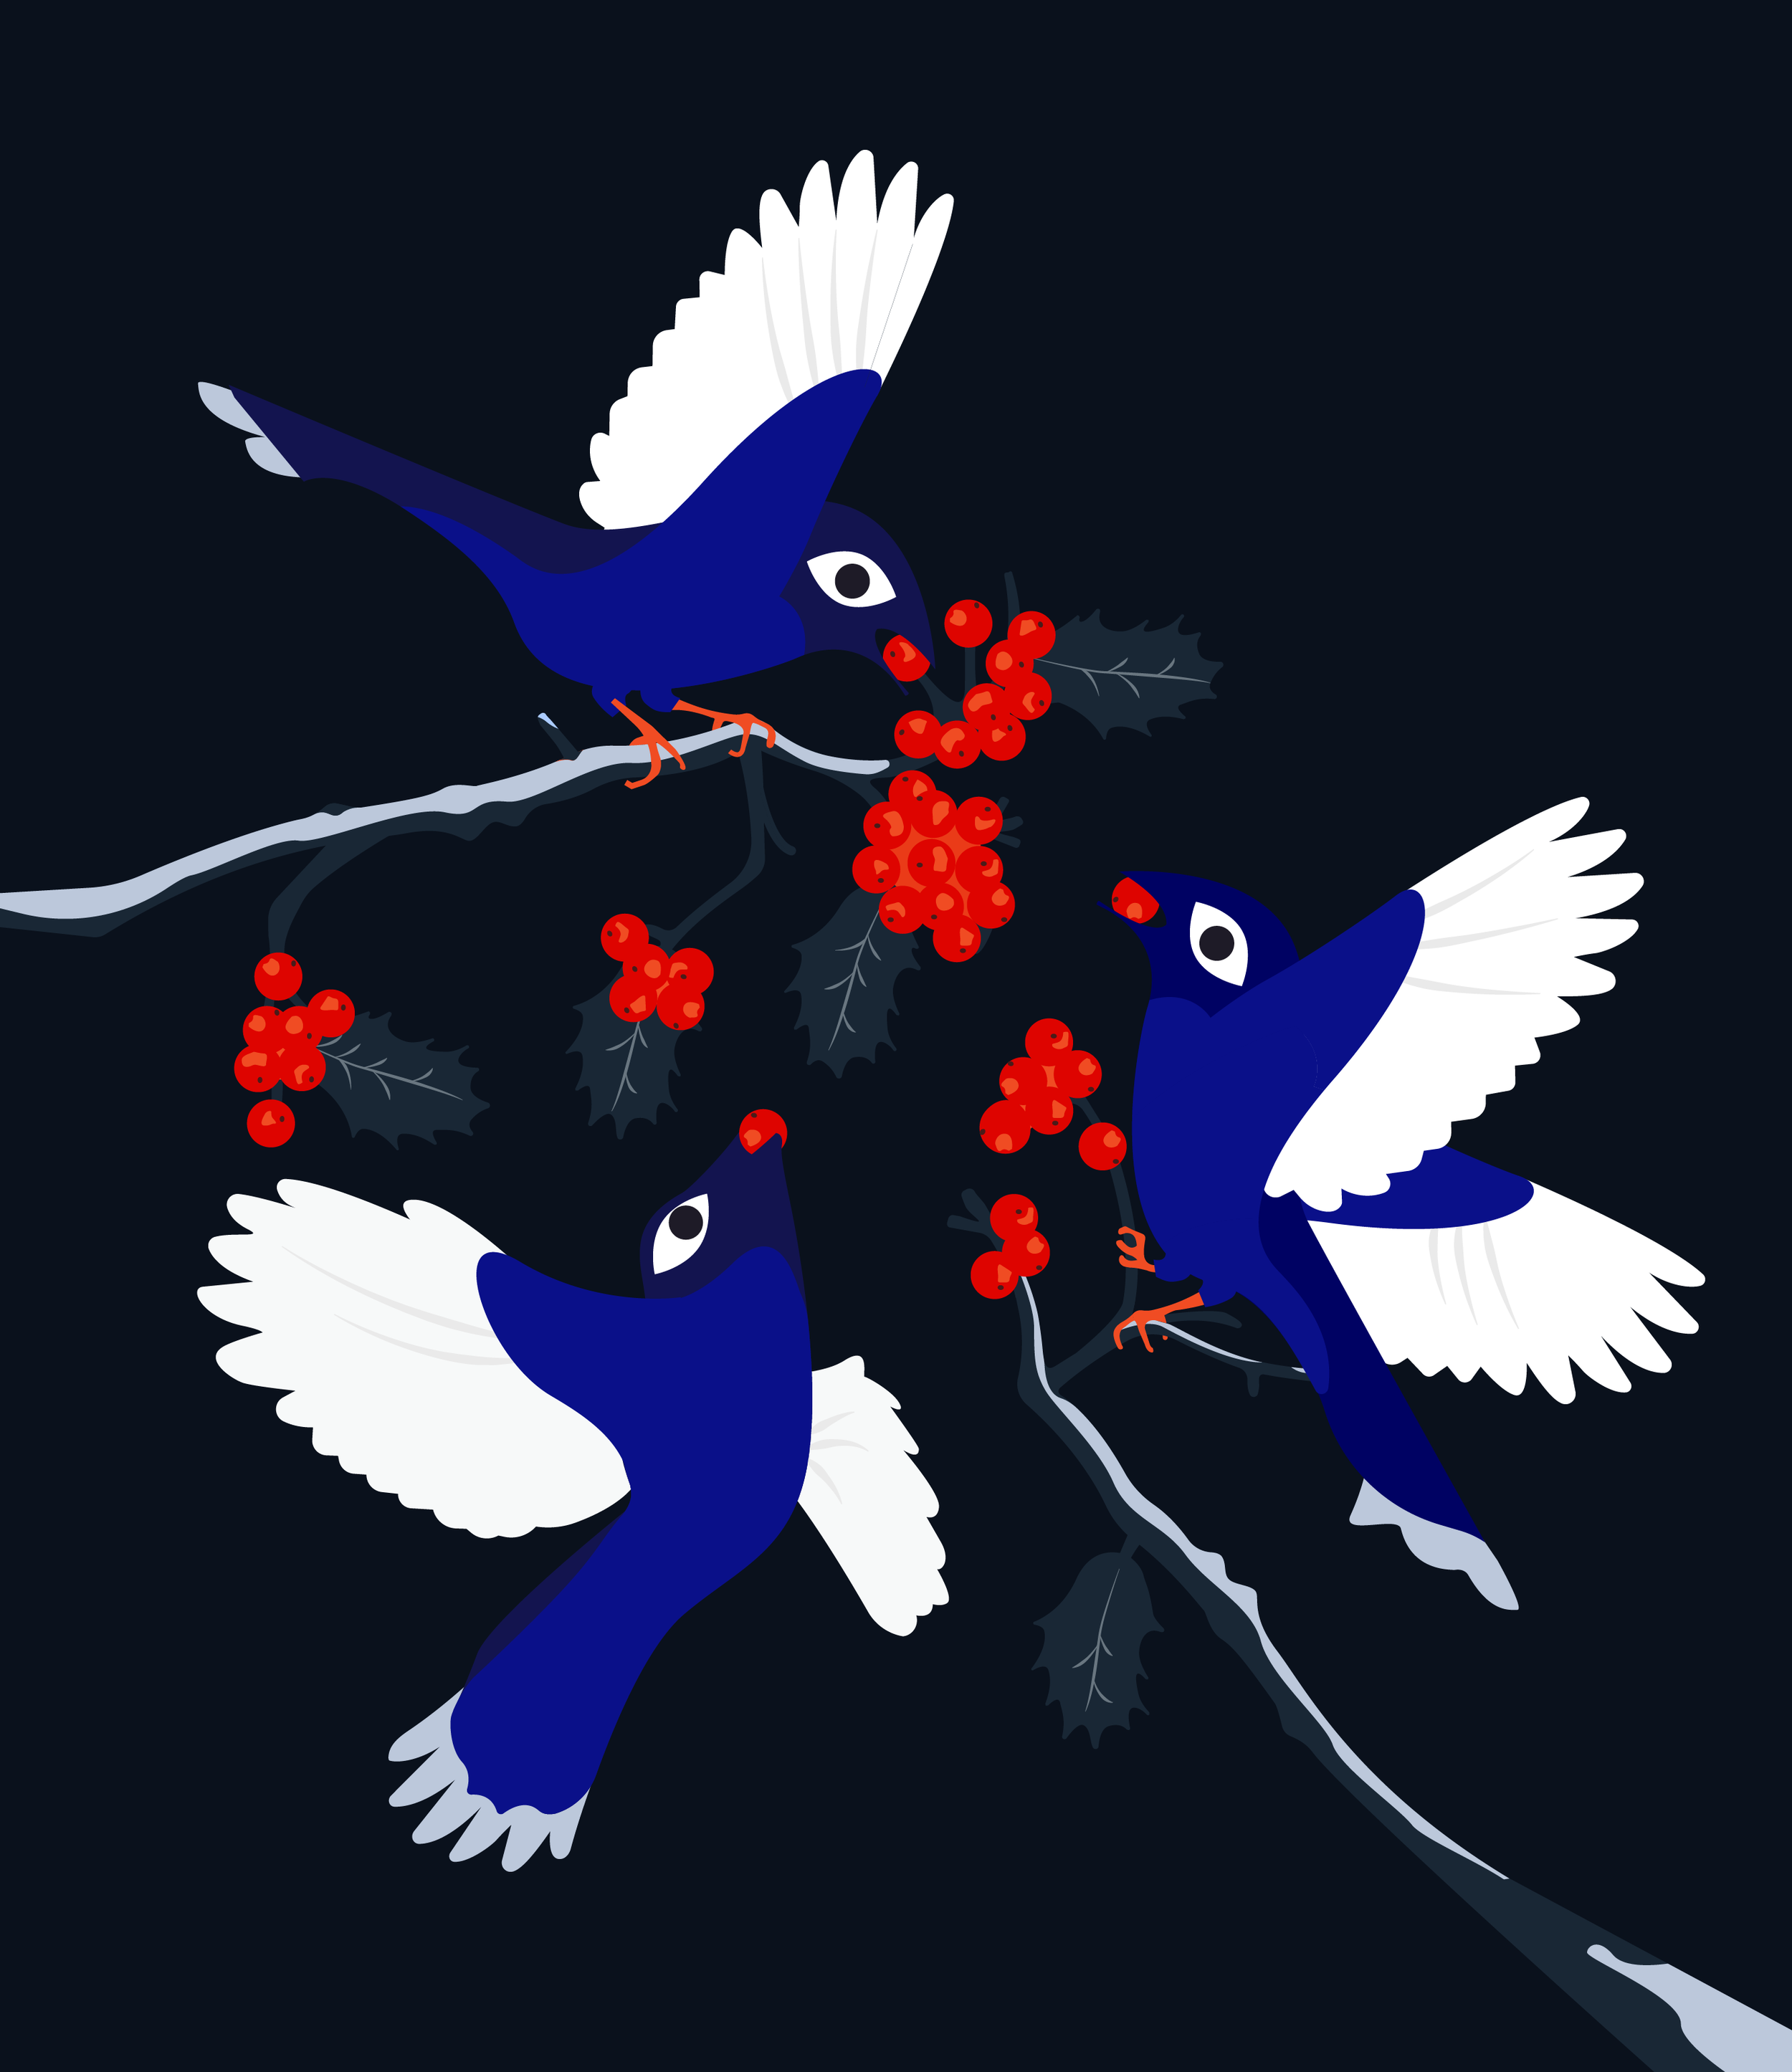 final_birdy-05-05.png